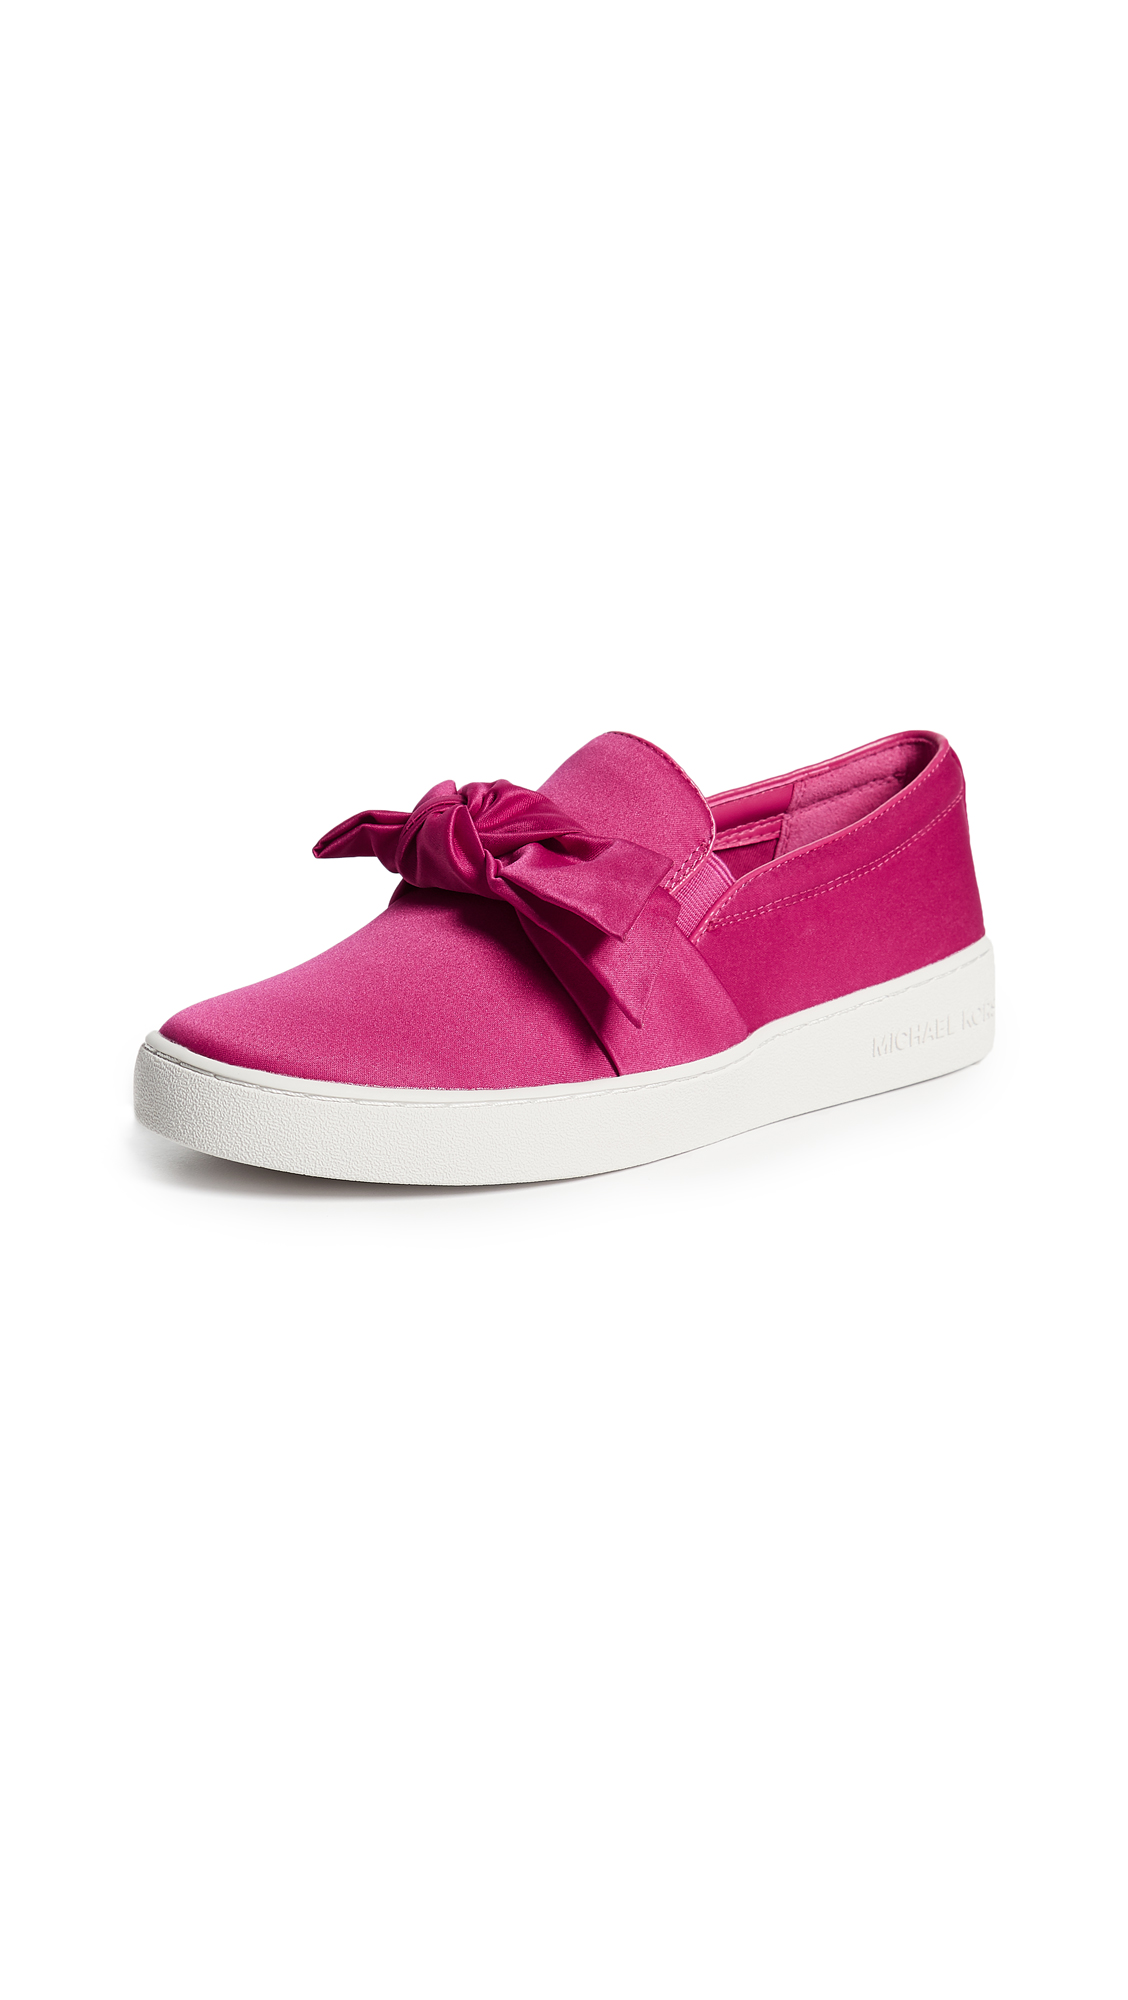 MICHAEL Michael Kors Willa Slip On Sneakers - Ultra Pink